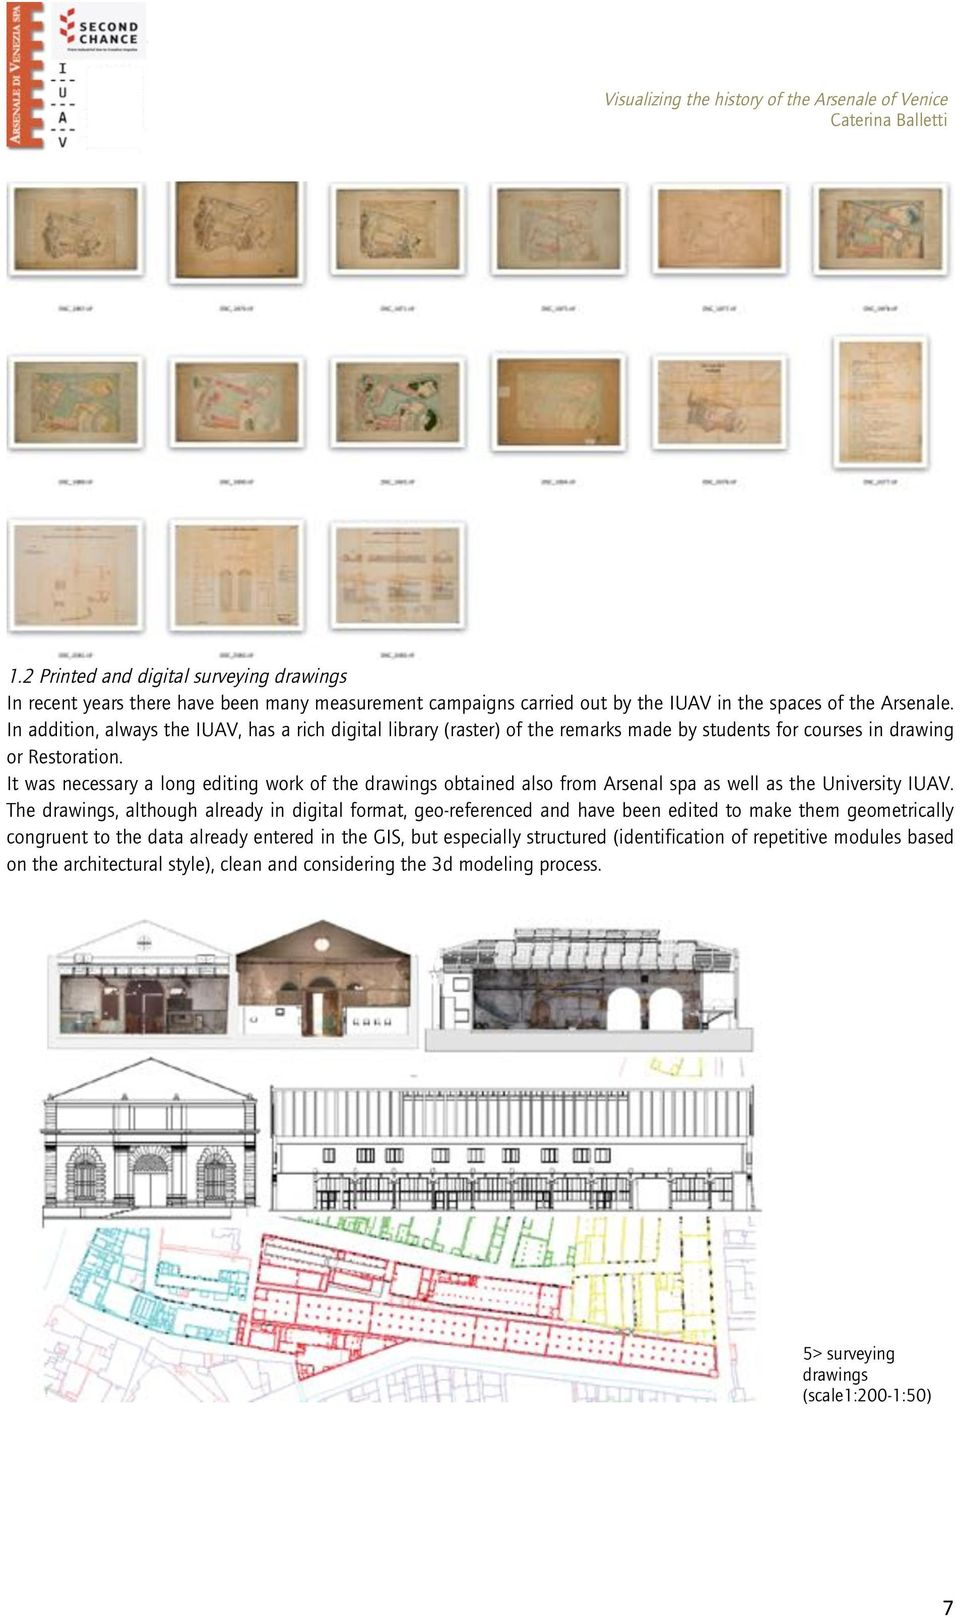 It was necessary a long editing work of the drawings obtained also from Arsenal spa as well as the University IUAV.